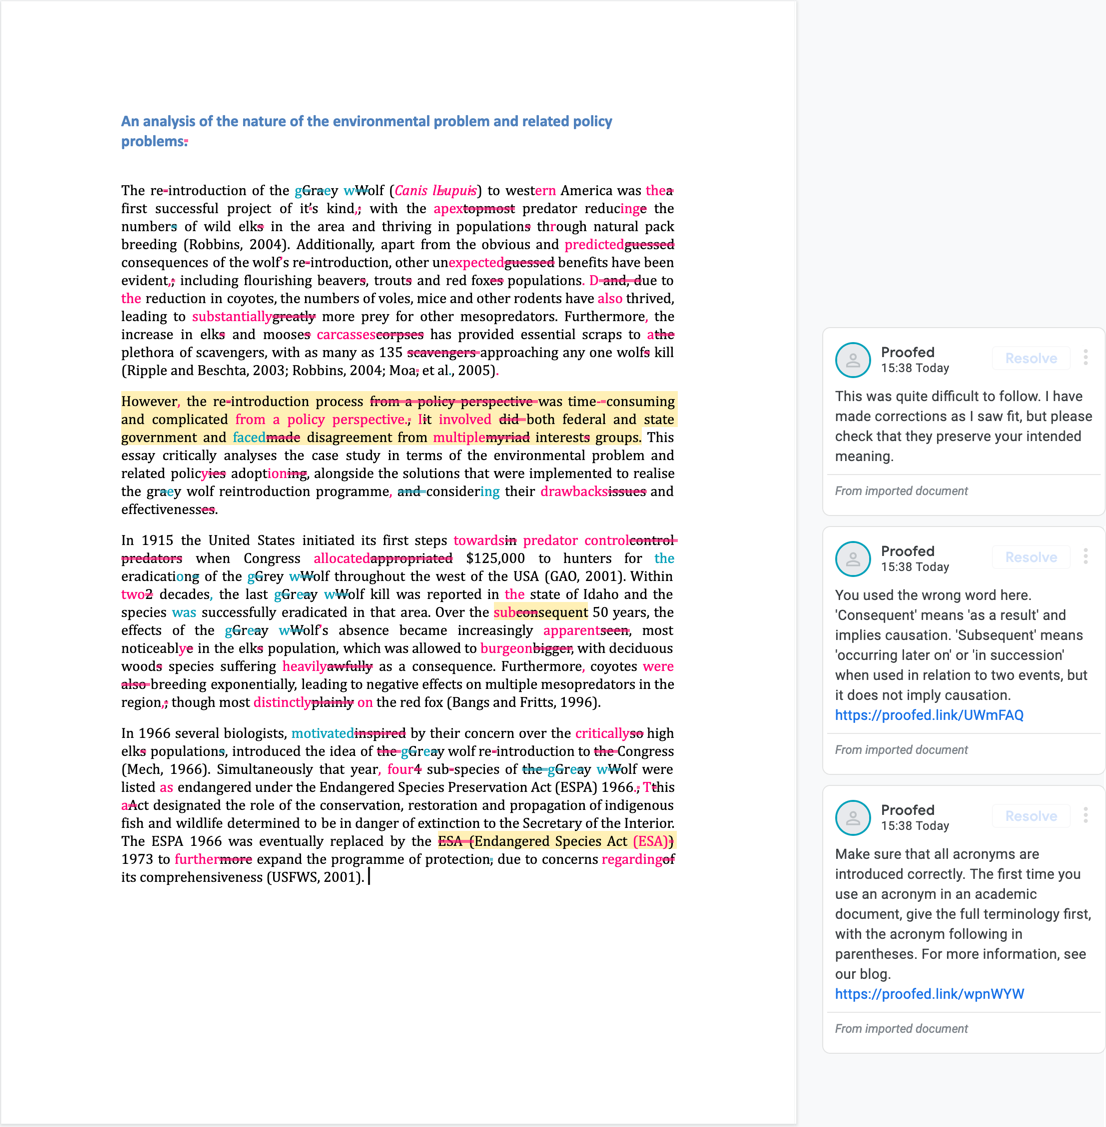 Google Docs proofreading example (after editing)